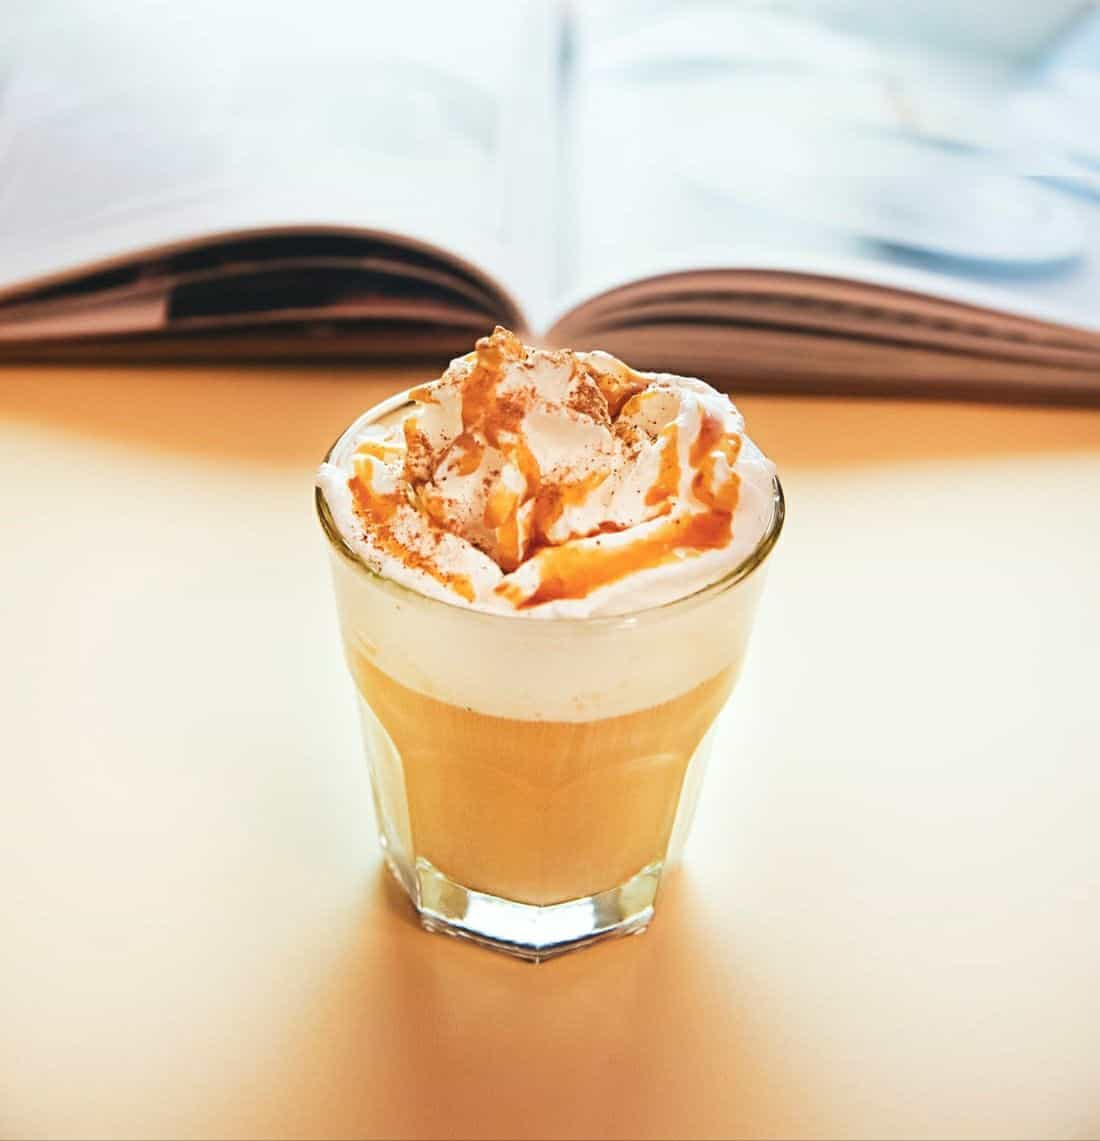 Iced caramel macchiato with whipped cream.